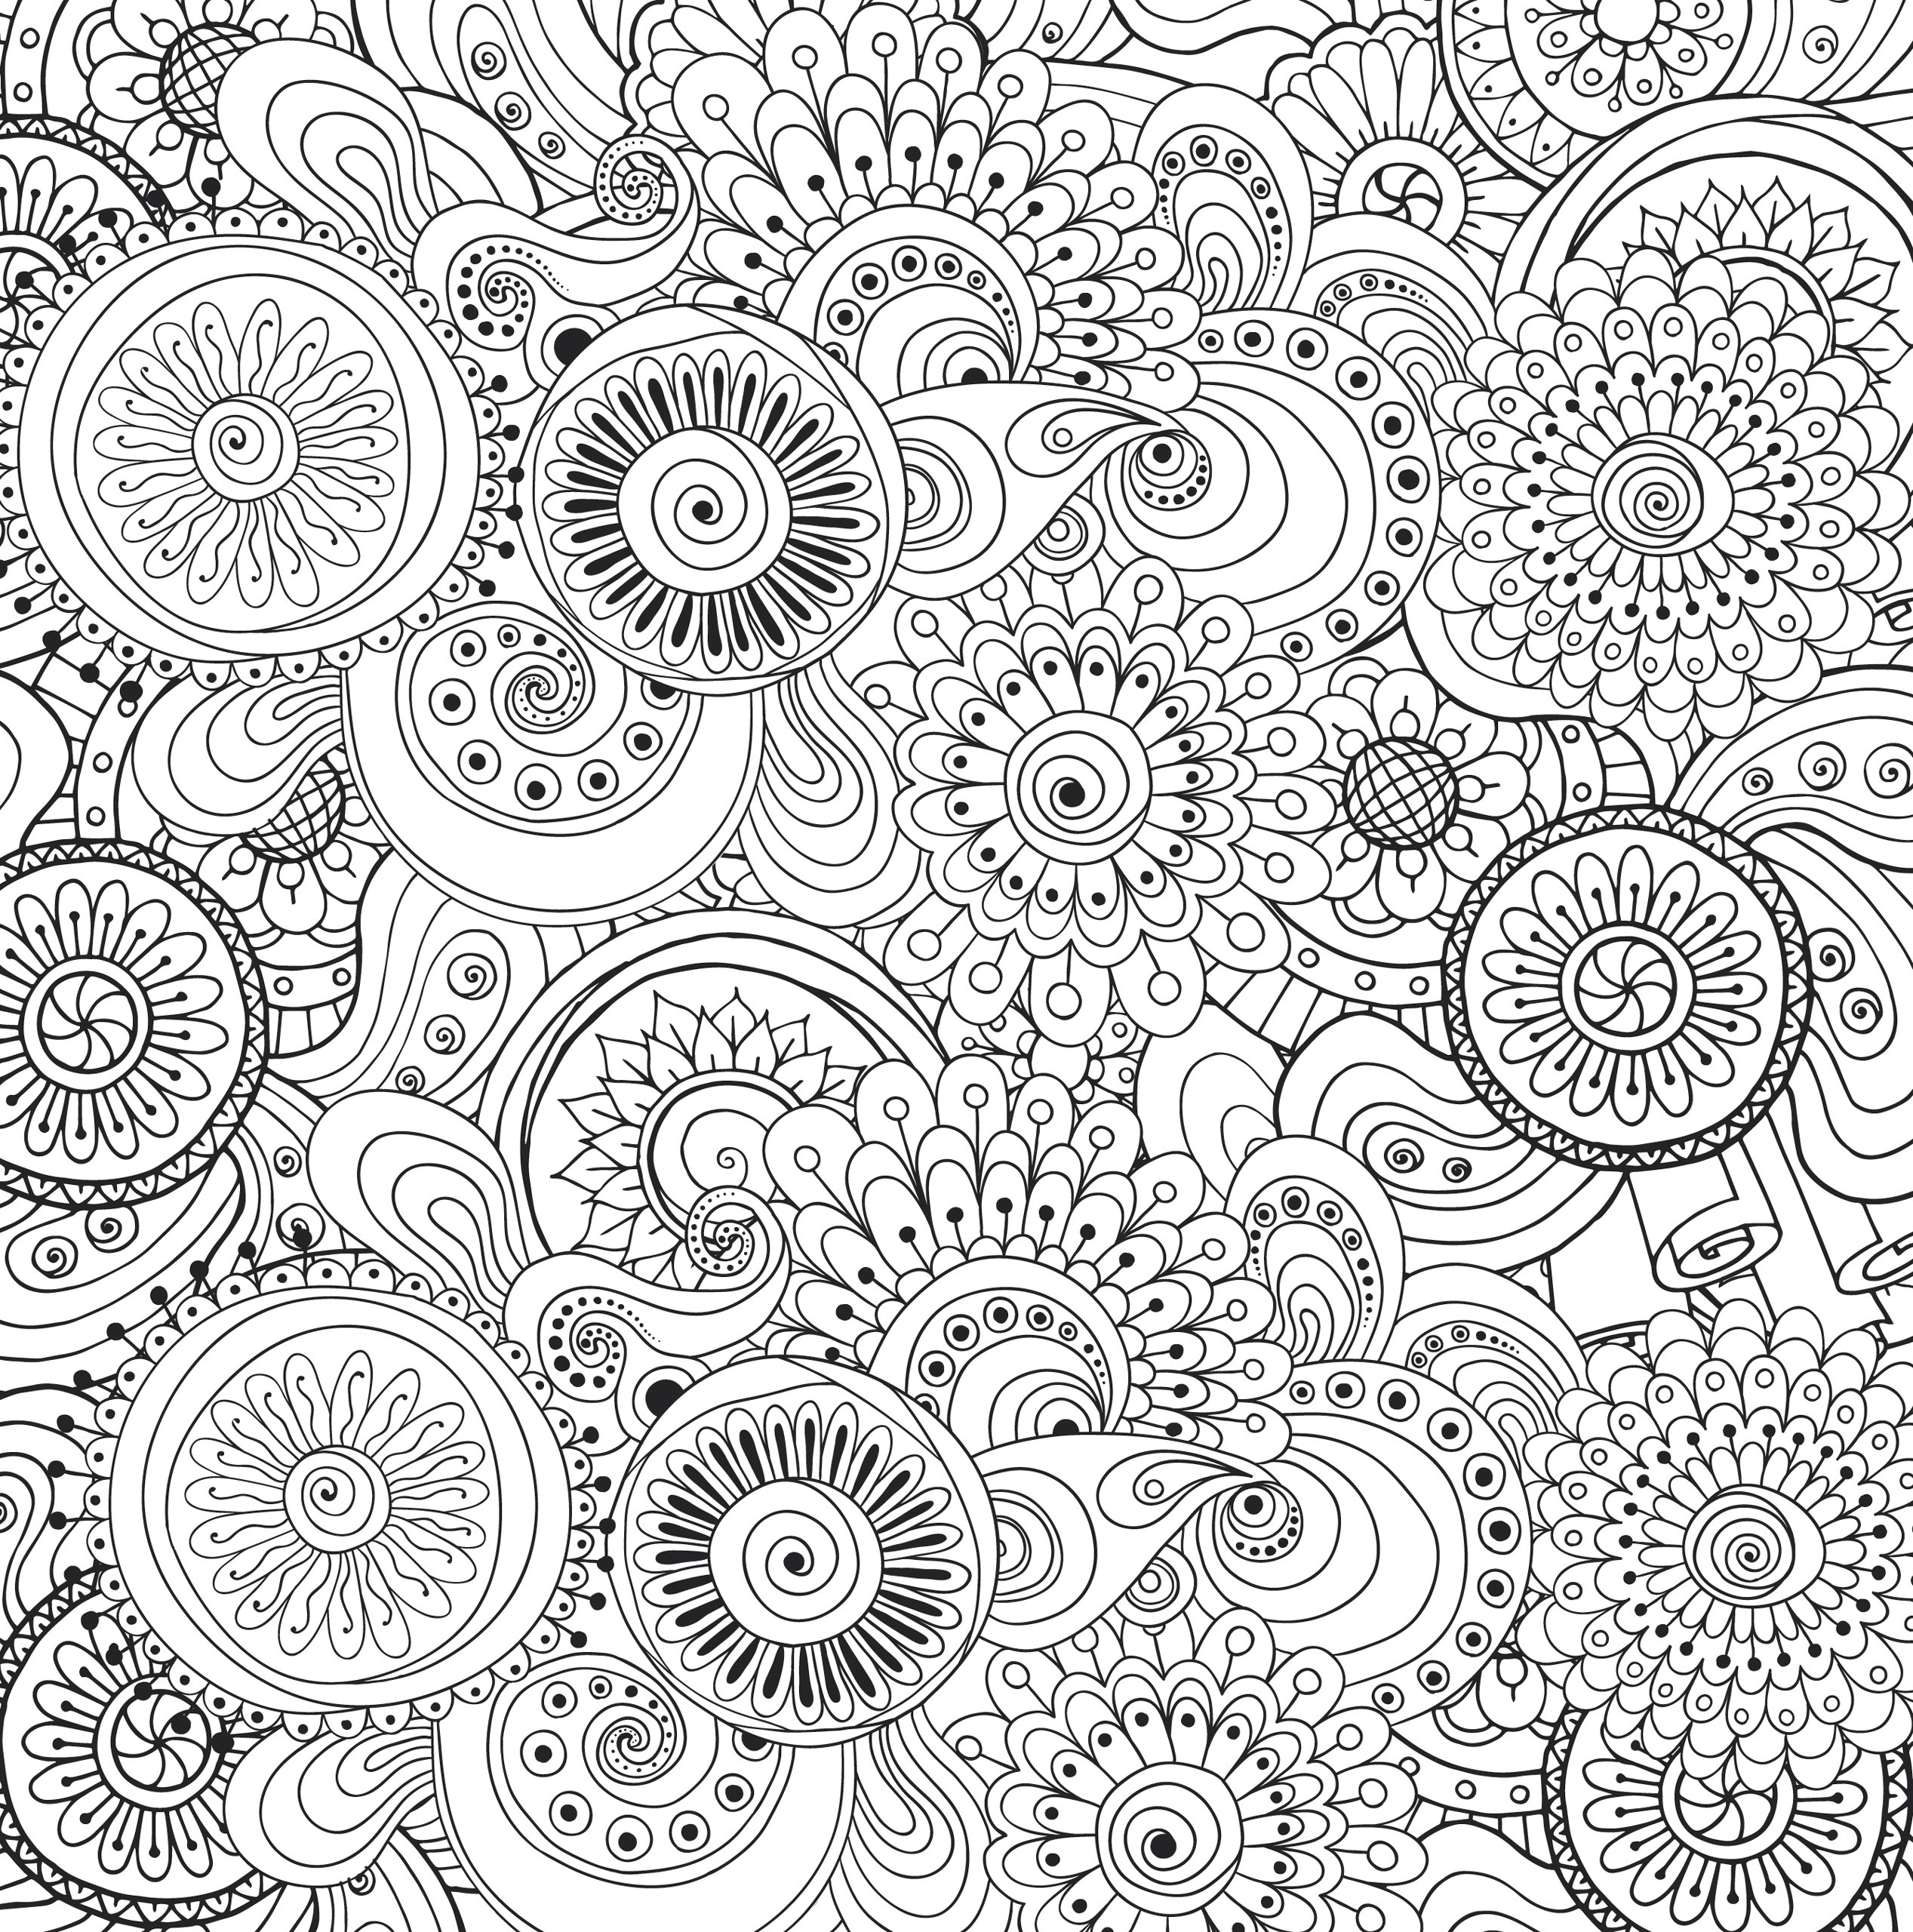 Peaceful Paisleys Adult Coloring Book 31 Stress Relieving Designs Peter Pauper Press 9781441320025 Books